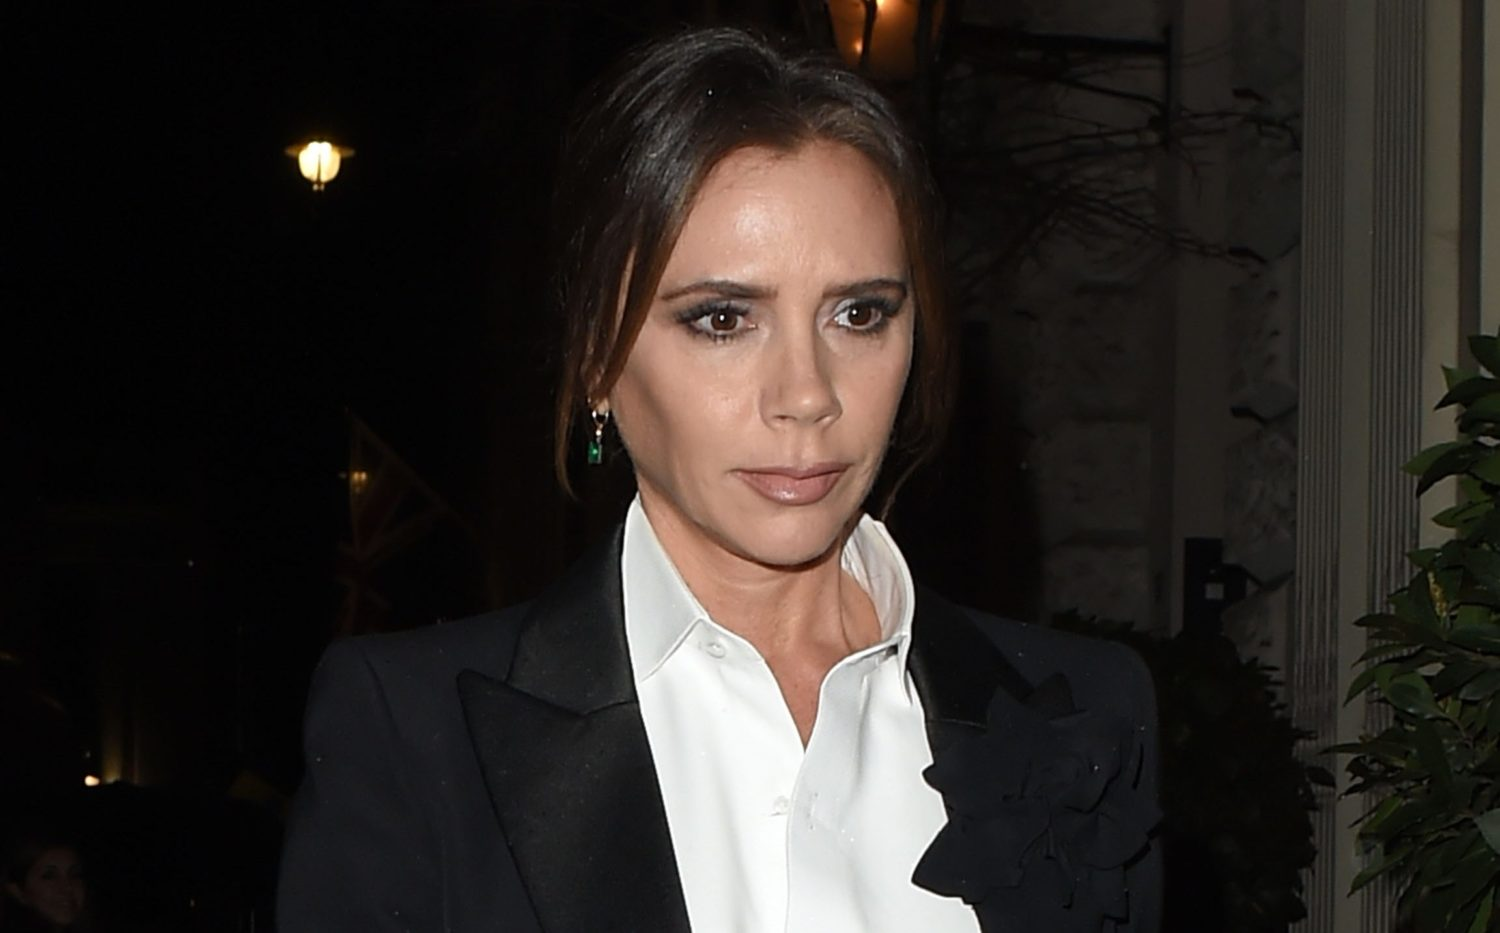 Victoria Beckham's fans question how she looks so glam in lockdown